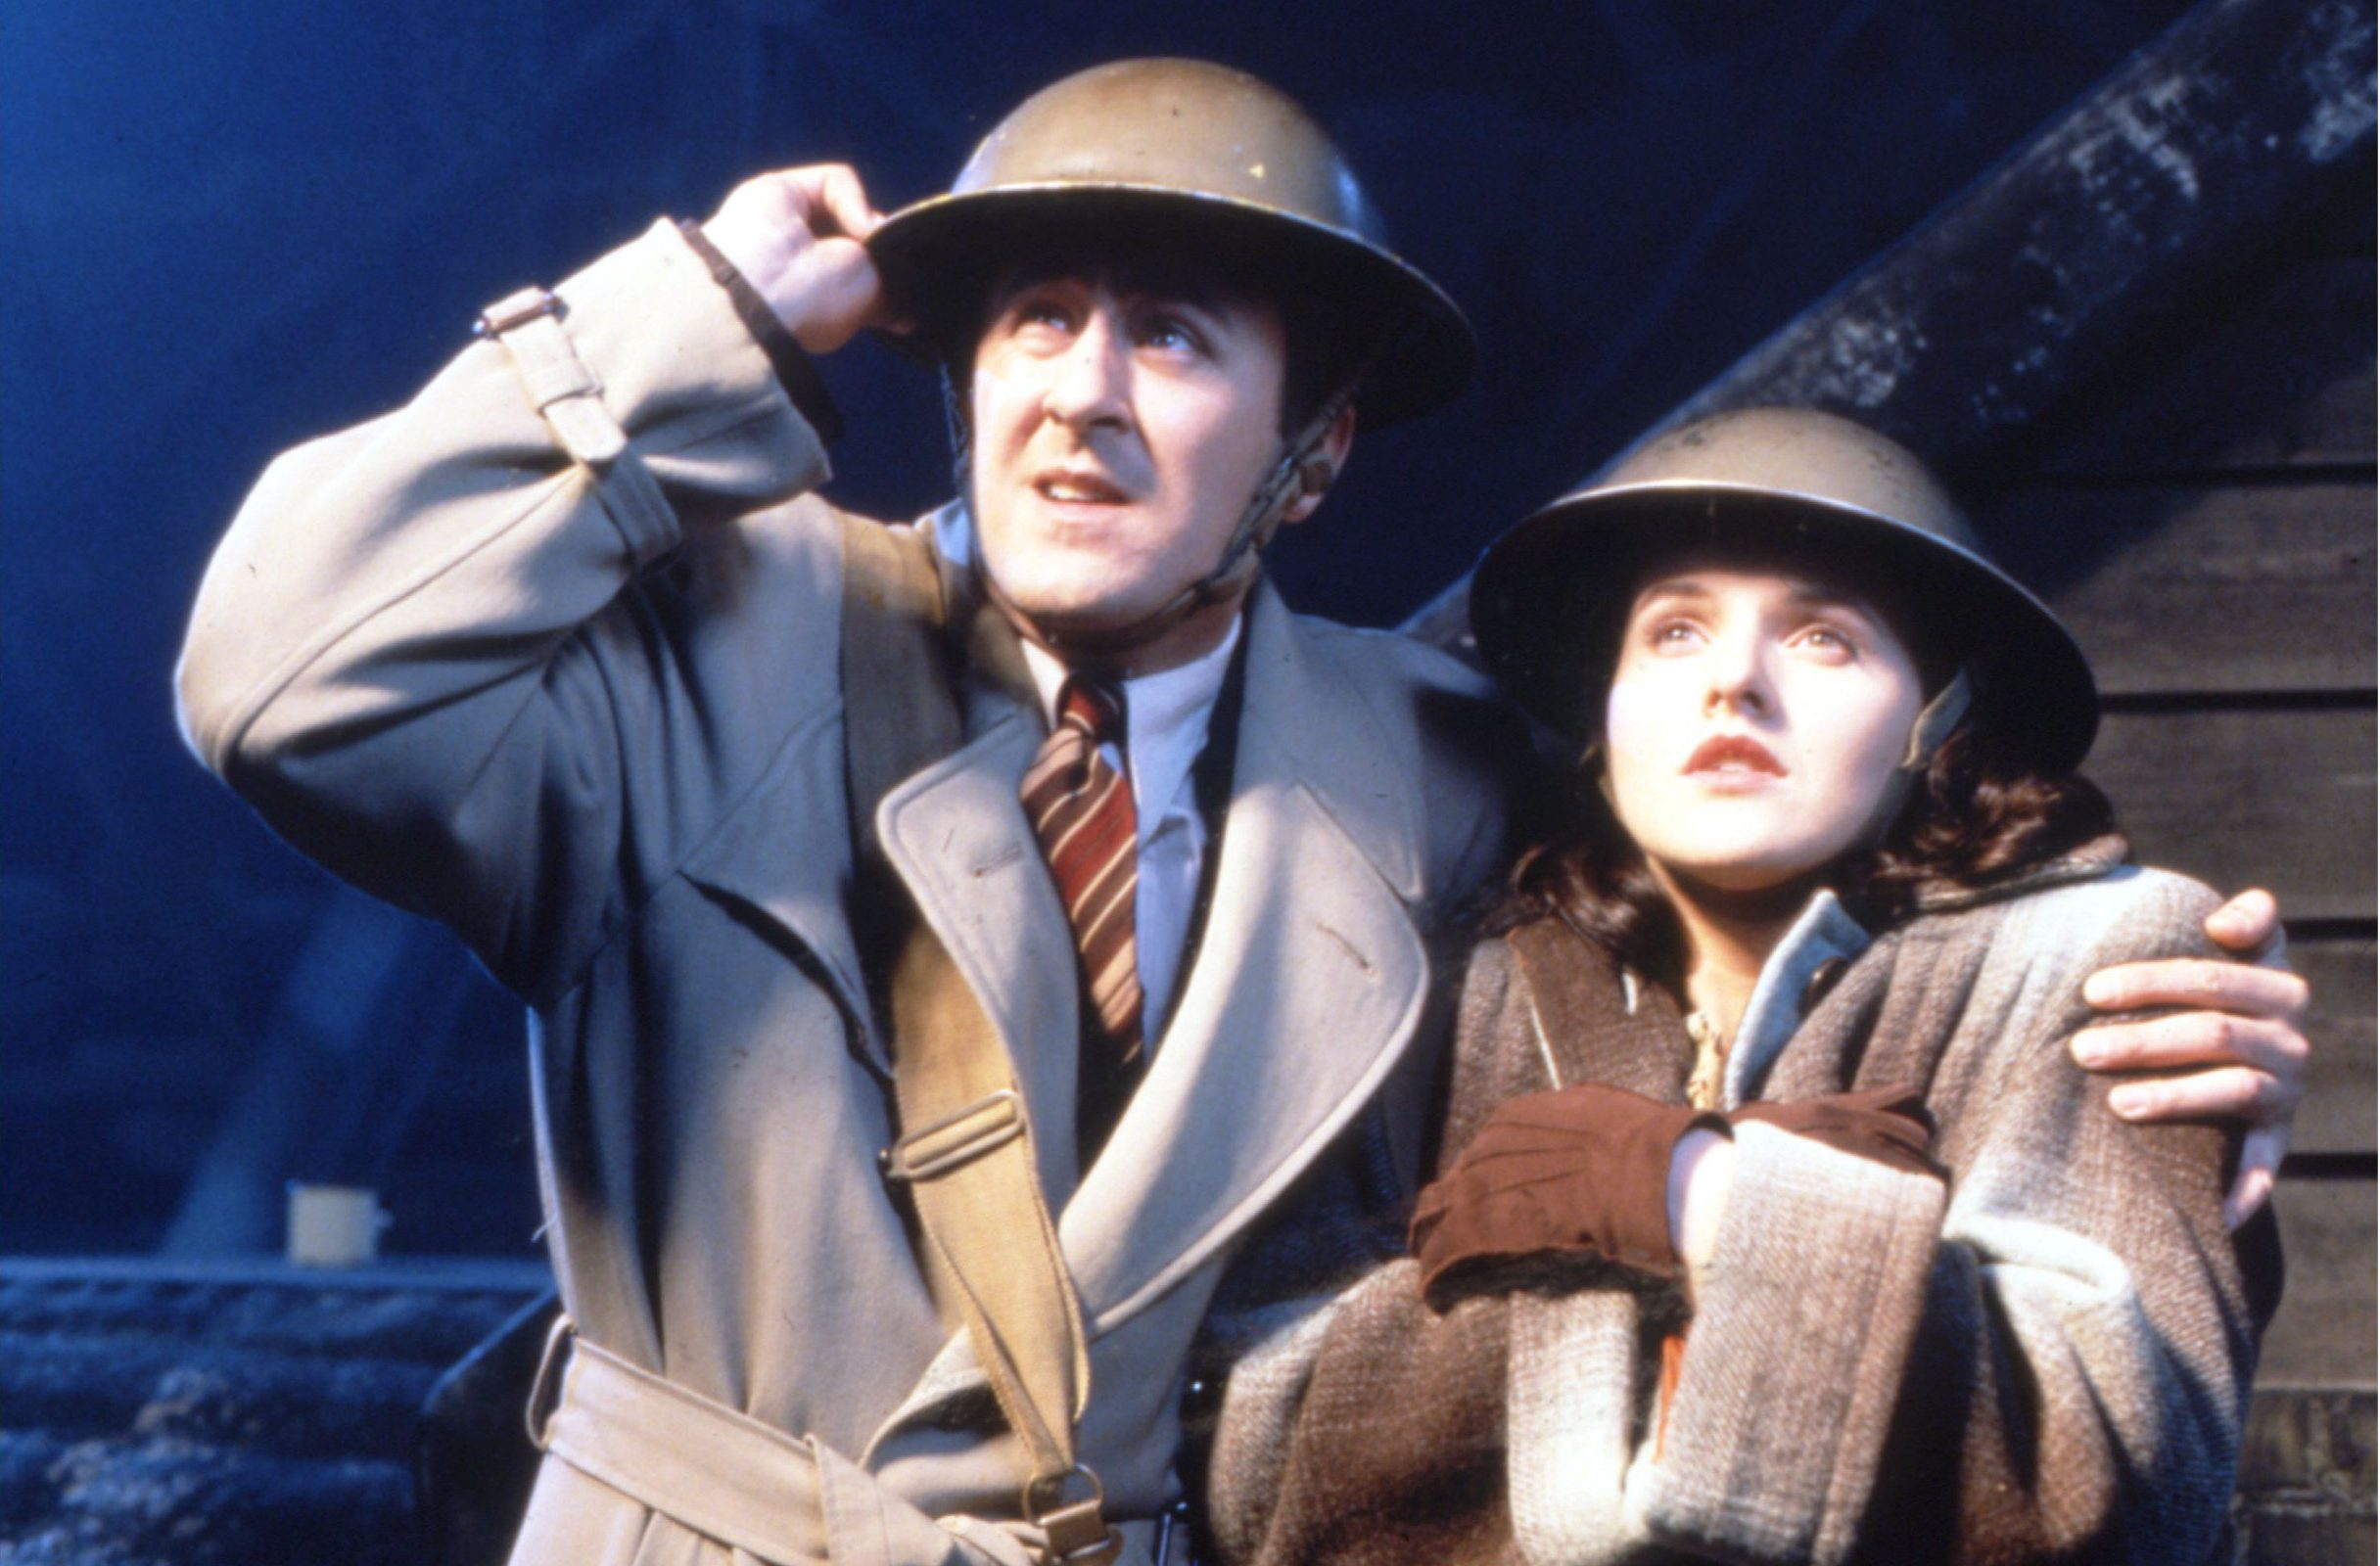 Goodnight Sweetheart is coming back with star Nicholas Lyndhurst